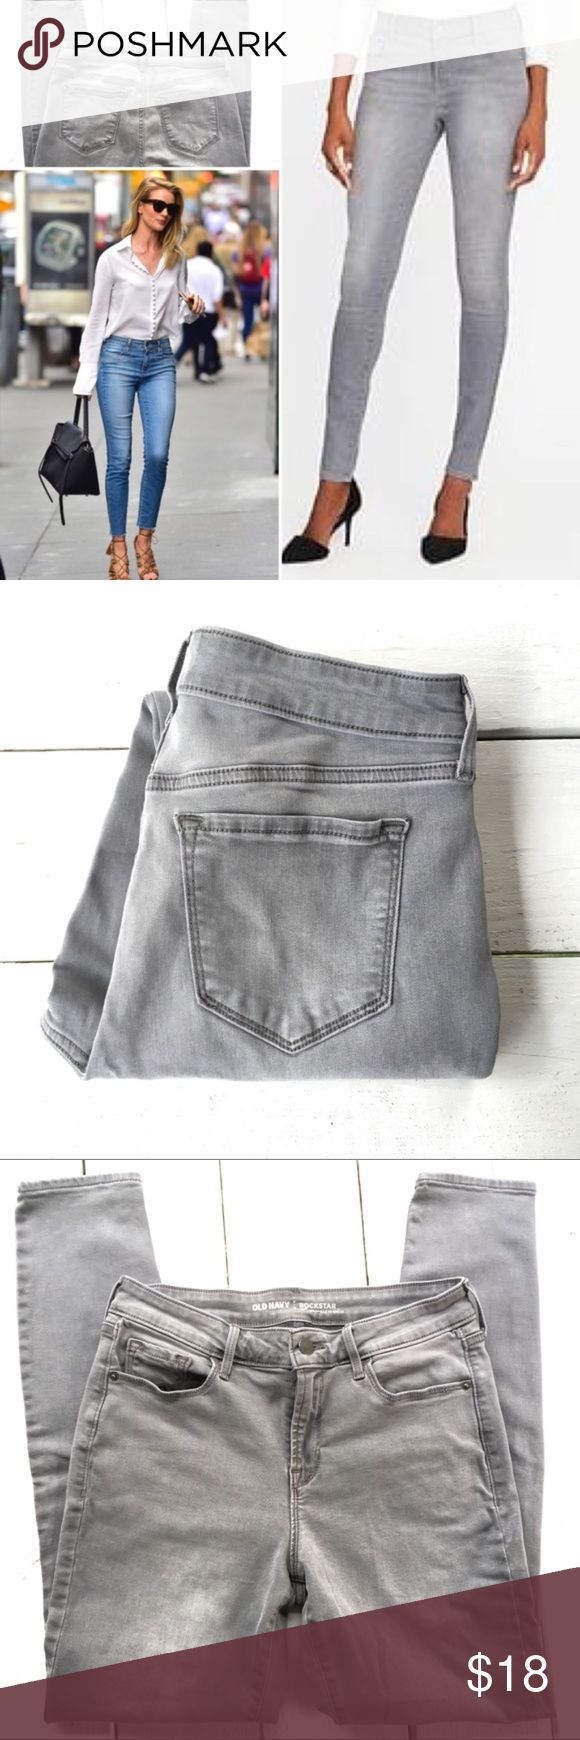 "Old Navy Rock Star Mid Rise Grey Size 8 Pre Owned. As good as new. Only worn and washed once. Old Navy Rock Star Jeans.  The favorites! Mid rise, wonderful-soft fabric, comfortable and stretchy. Slimming cut Mid rise. Suitable for curvy/hourglass and all body shapes.  Size 8. True to size.  Pls check measurements for a perfect fit.  Waist 14.5"" Hip 17.75"" Rise 10"" Inseam 28.75"" Length 37.75"" Bundle two or more items and save!  I posted a guide to denim online shopping for more help in case…"